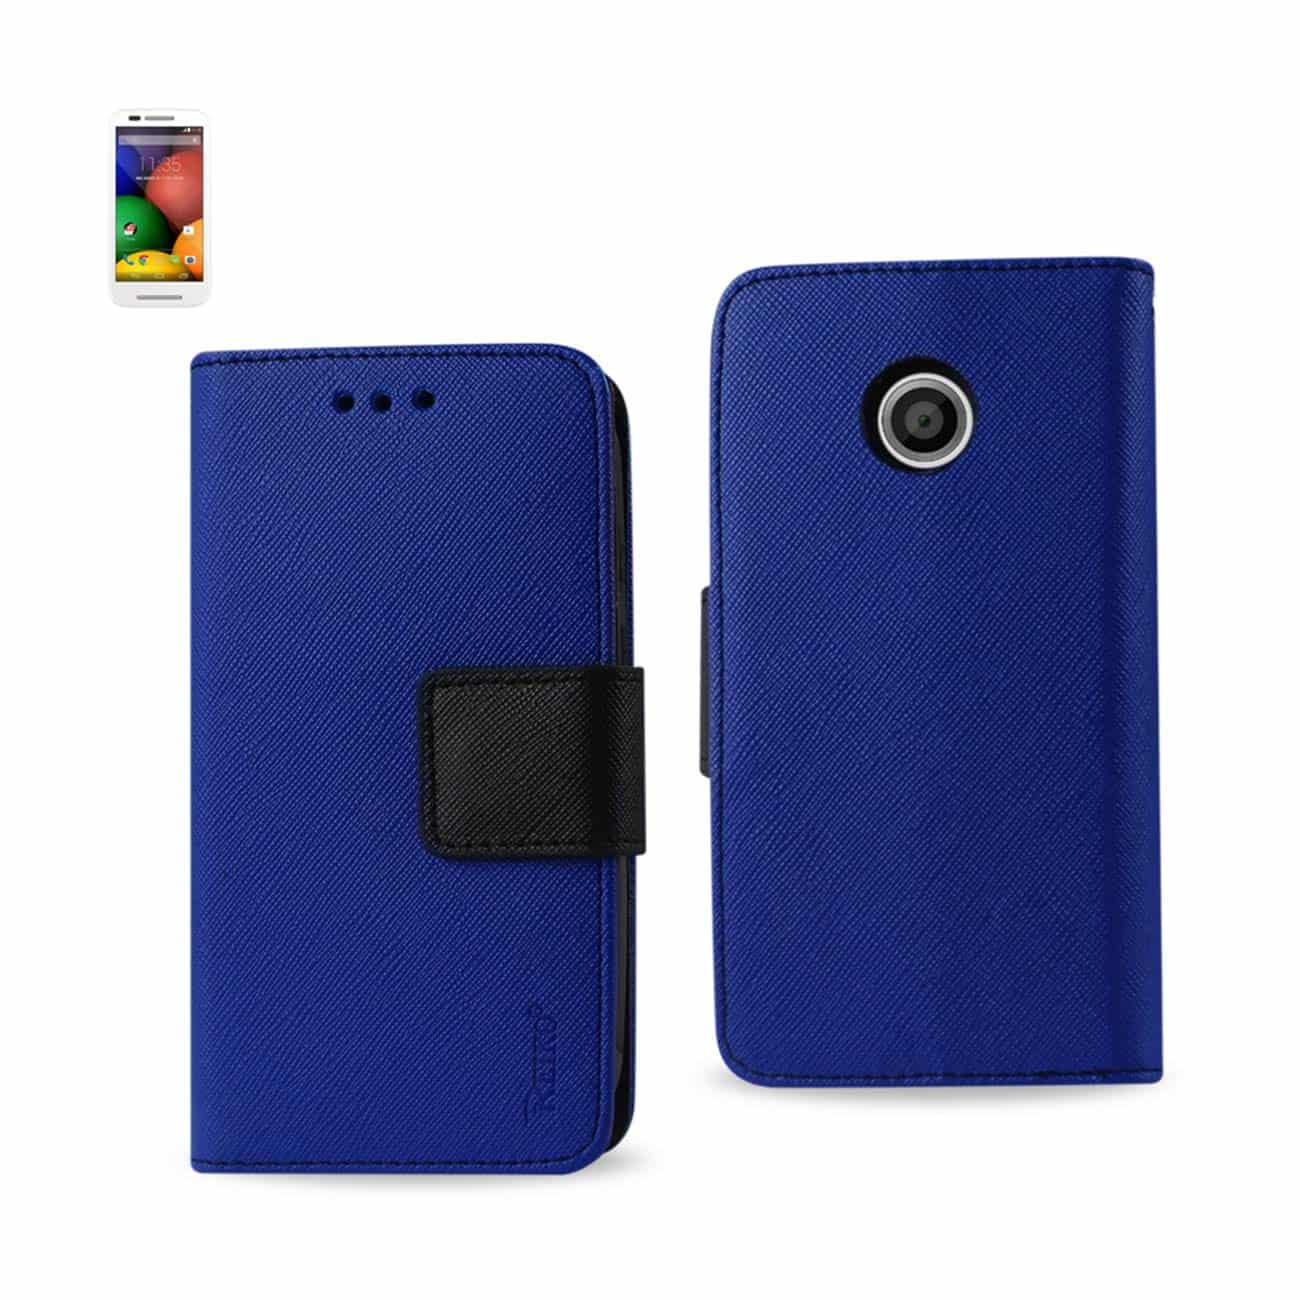 MOTOROLA MOTO E 3-IN-1 WALLET CASE IN NAVY